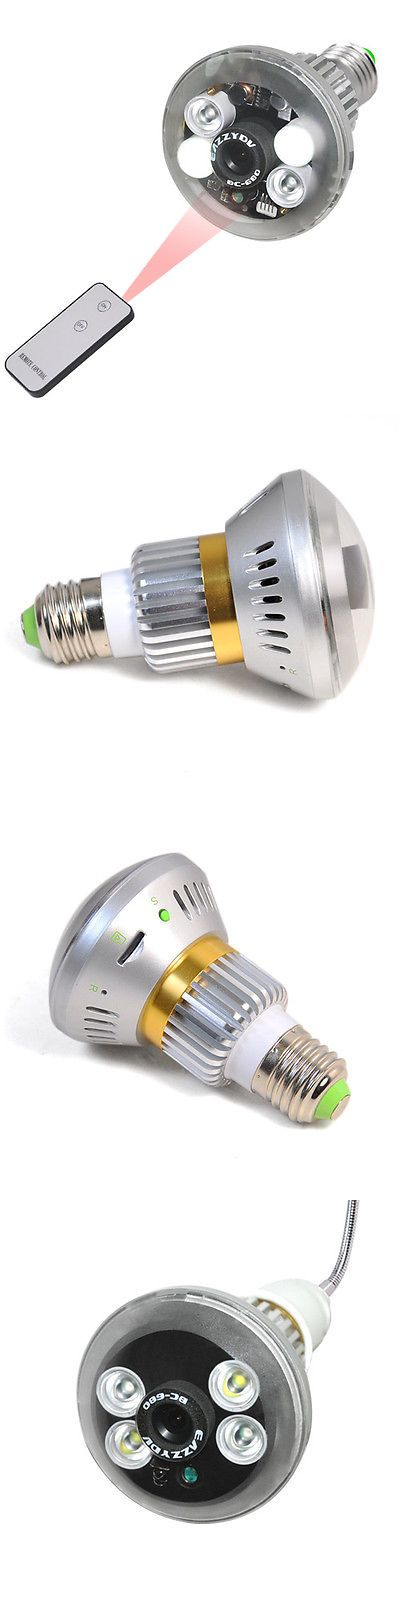 Other Home Surveillance: Light Bulb With Hidden Camera -> BUY IT NOW ONLY: $99.95 on eBay!